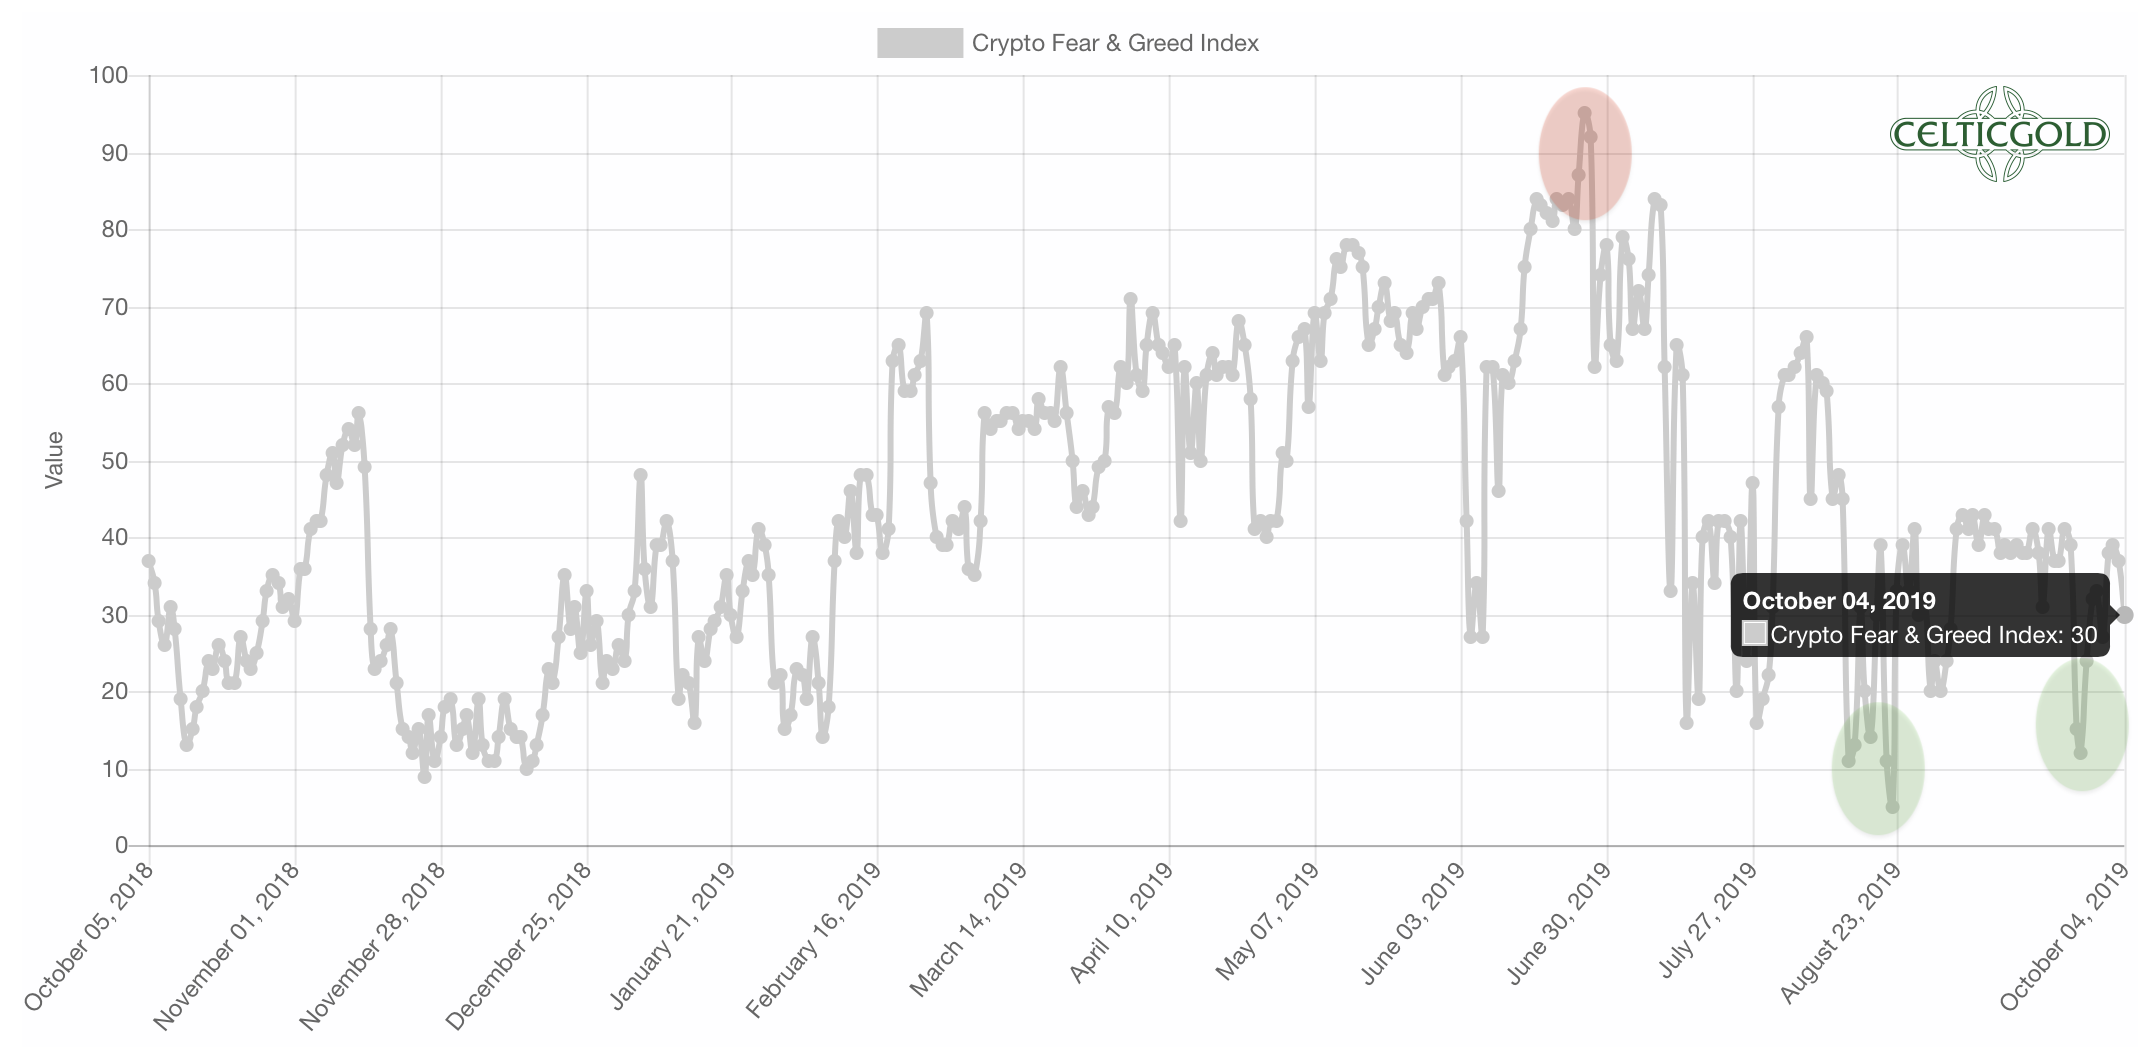 Source:Crypto Fear & Greed Index